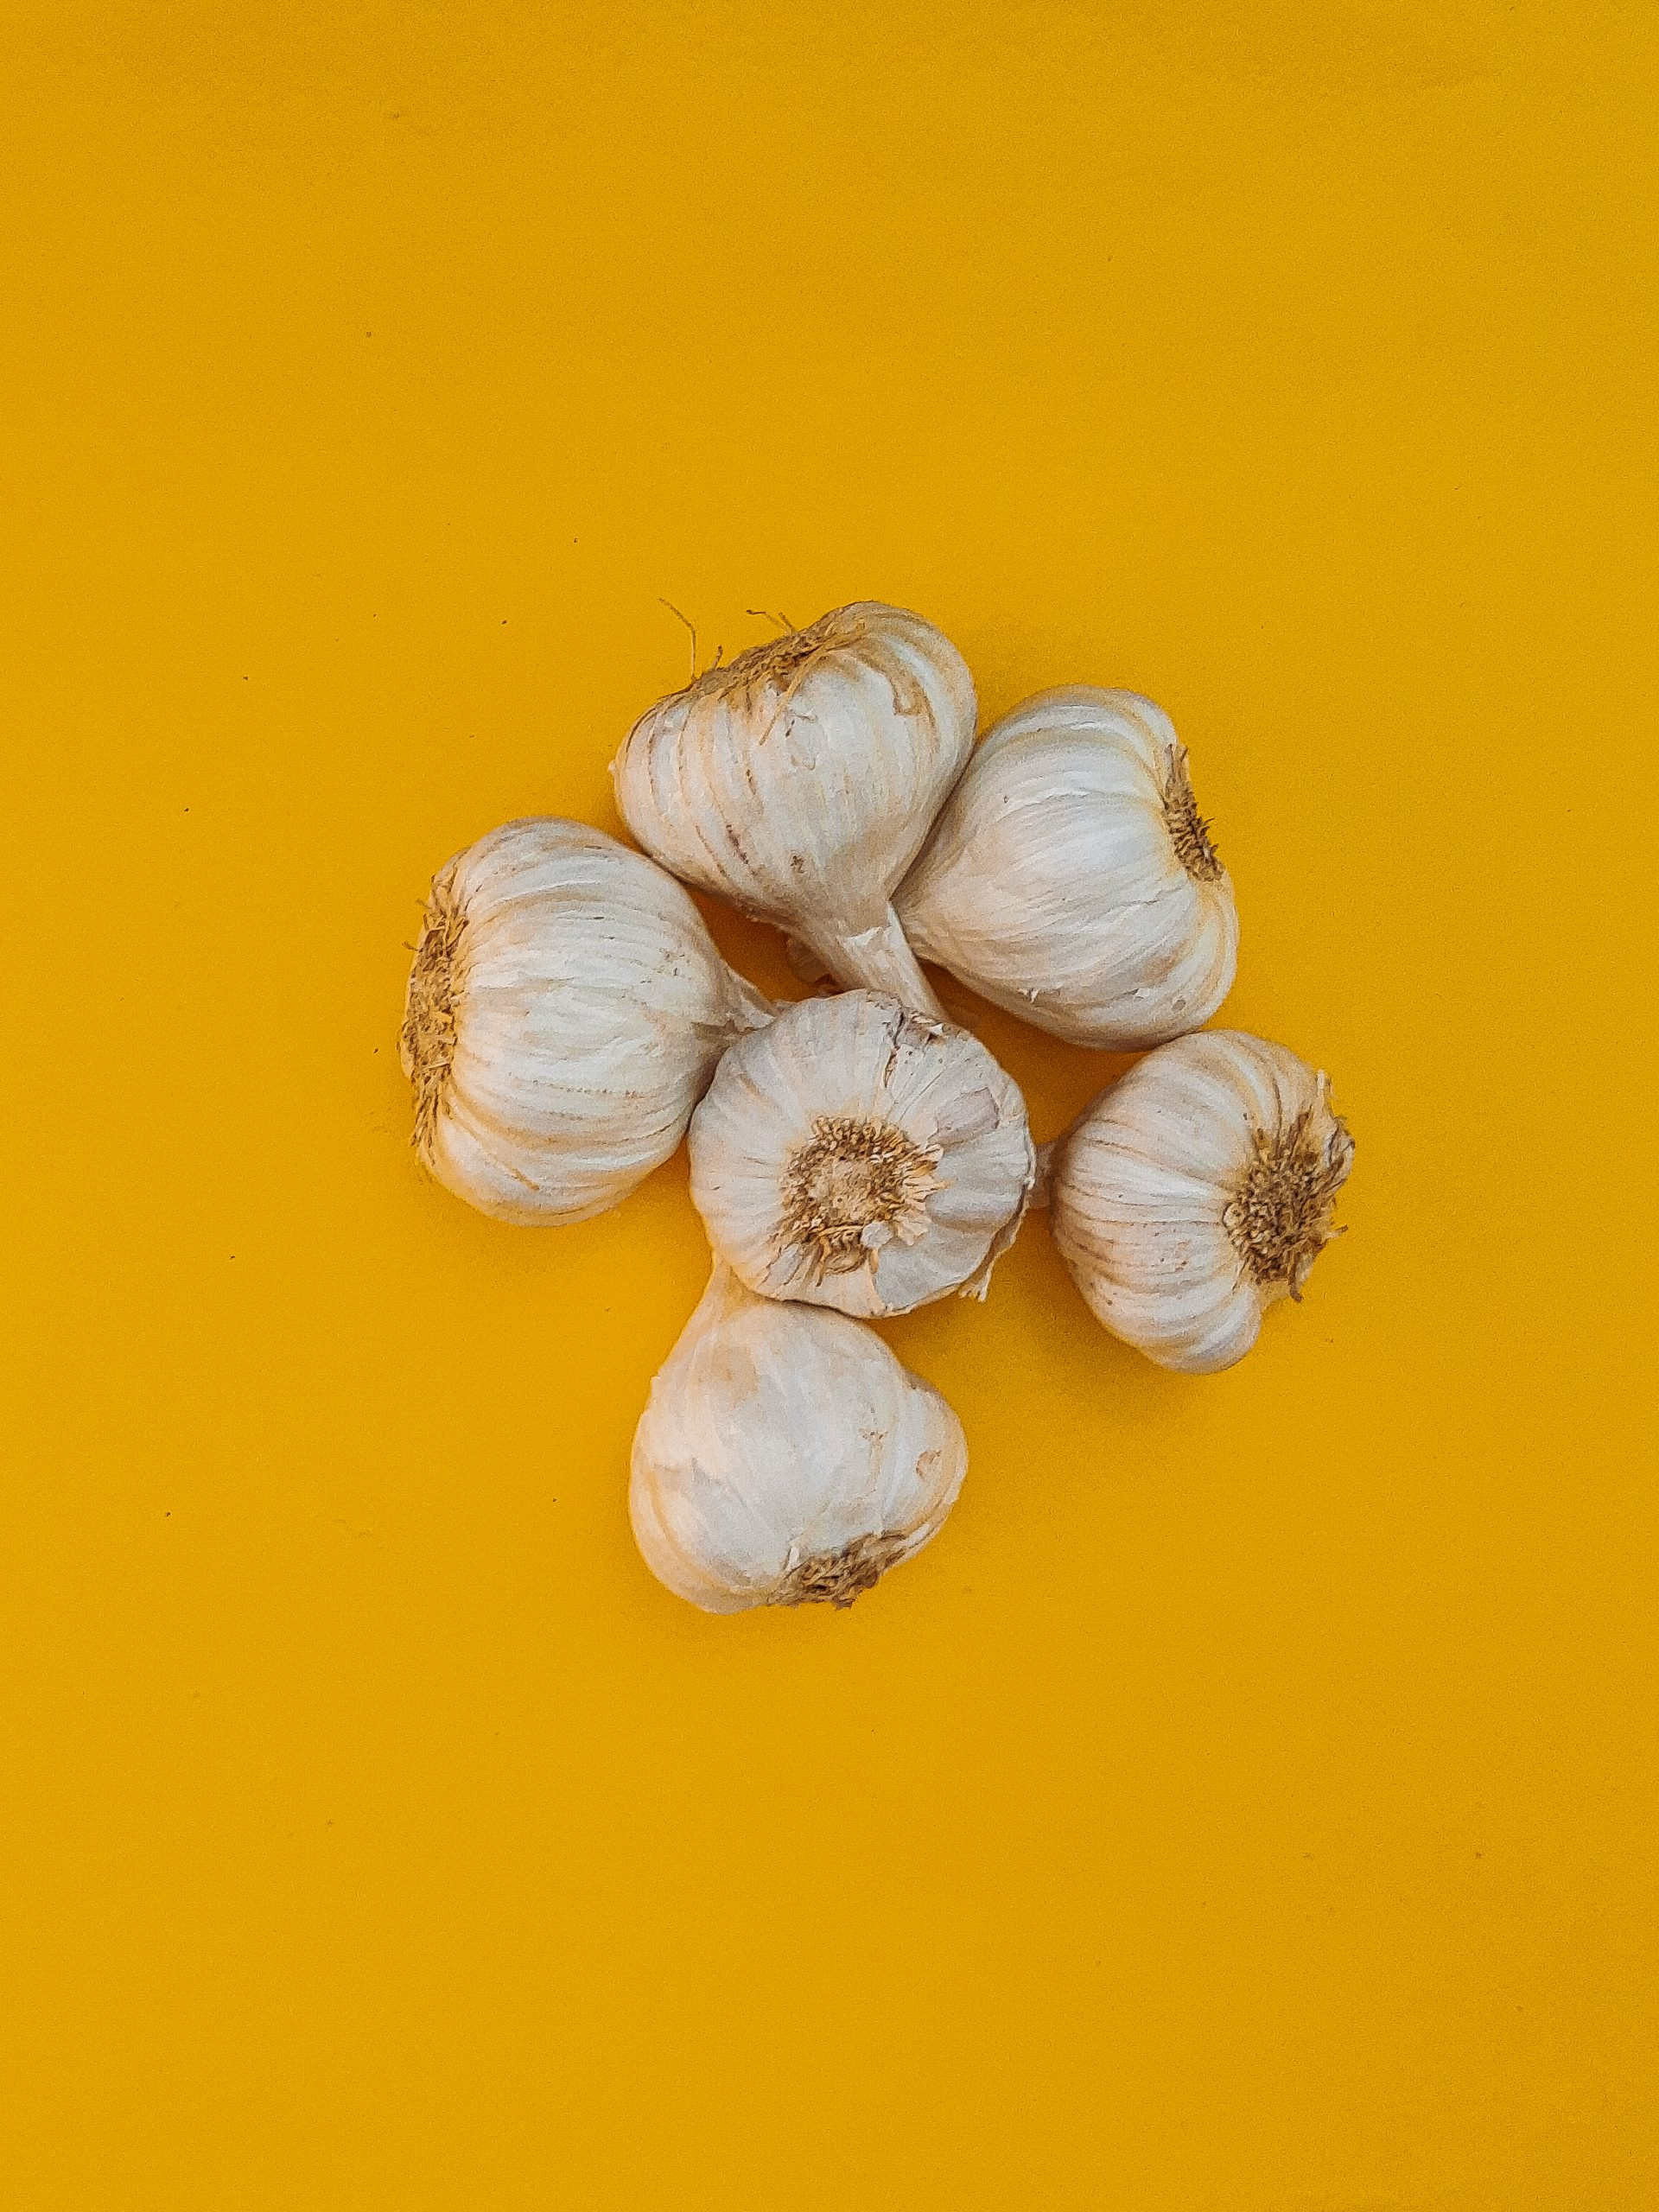 A flatlay style of fresh garlic